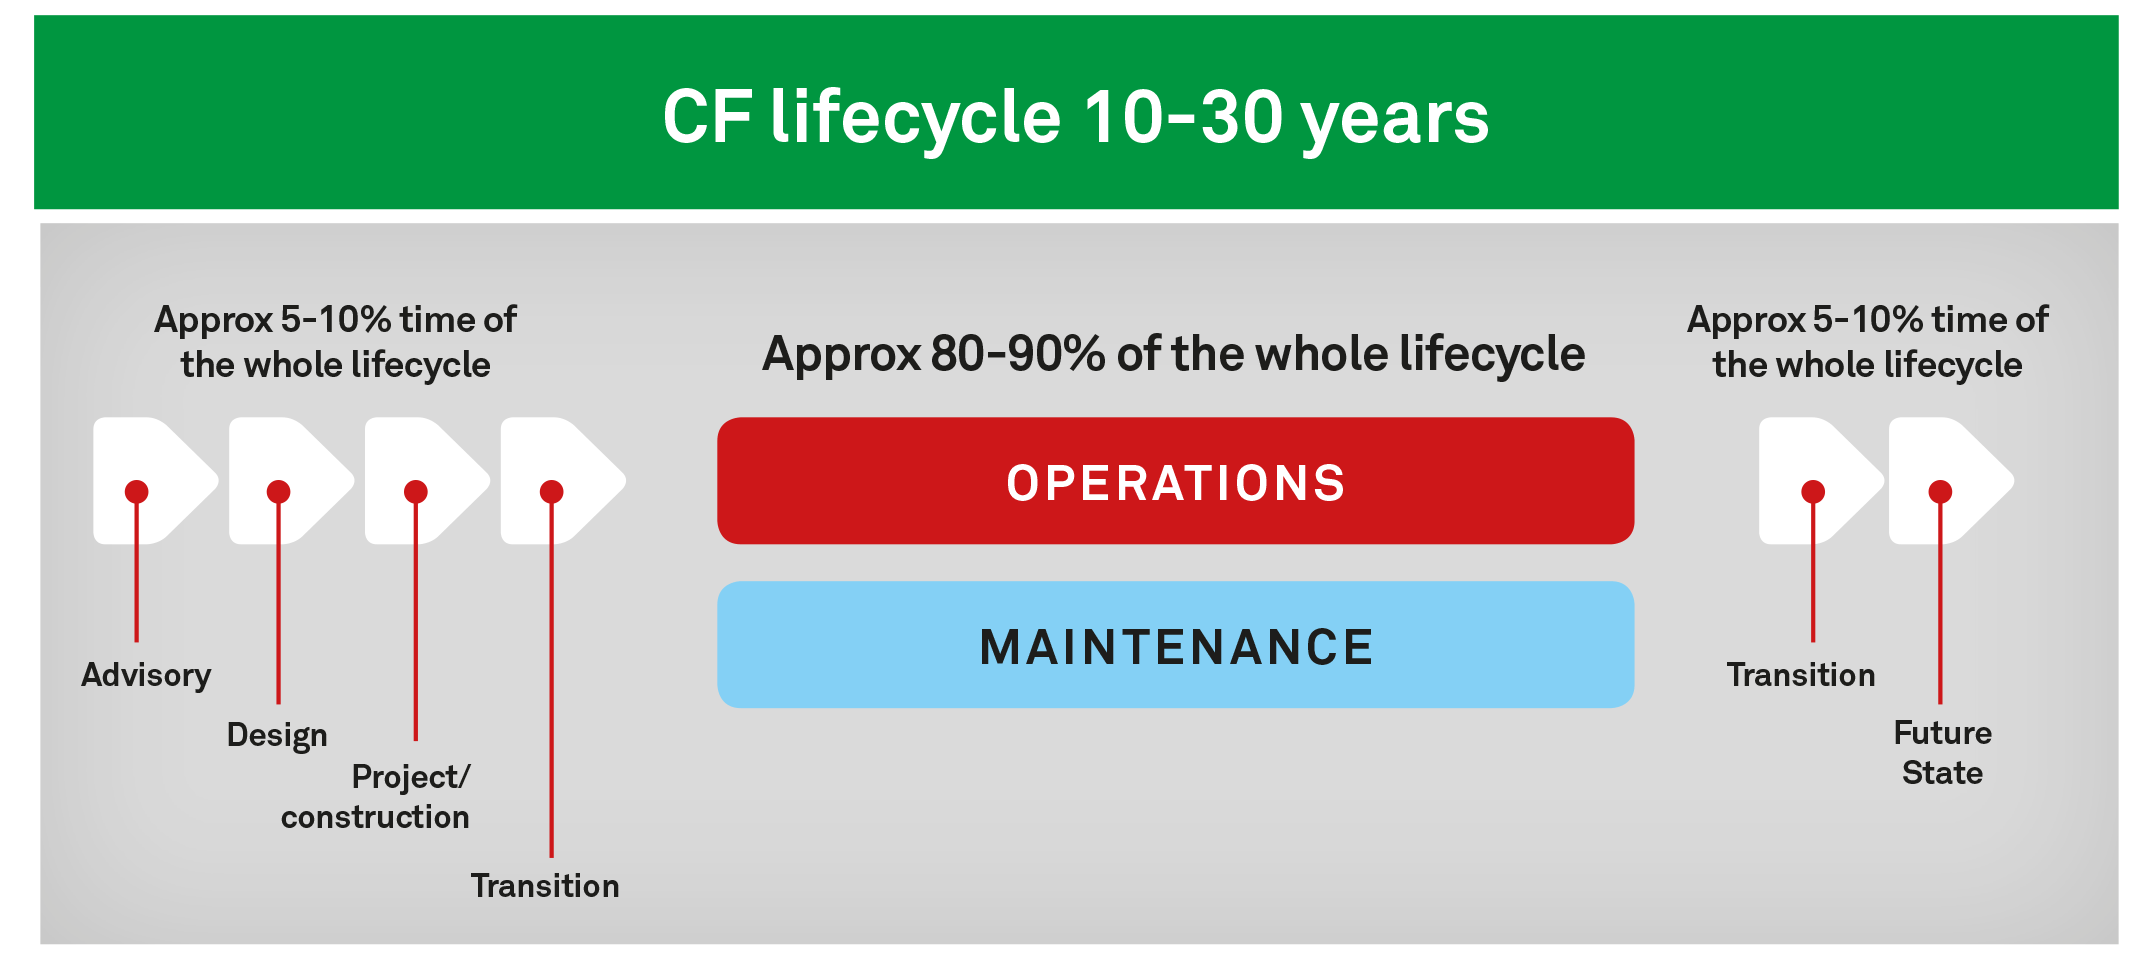 Coromatic CF life cycle